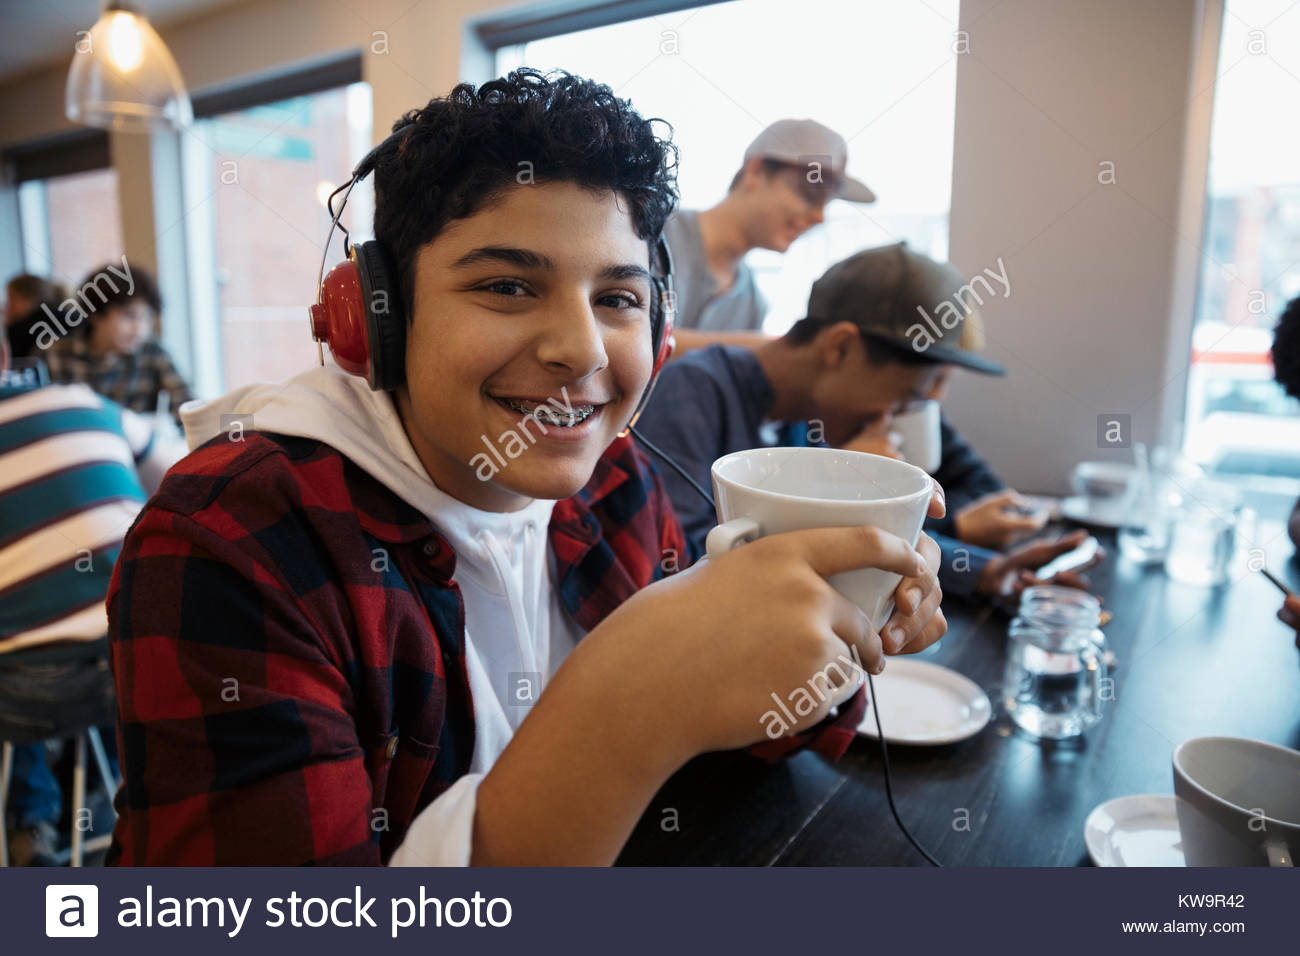 Portrait smiling,confident Middle Eastern tween boy with headphones drinking coffee - Stock Image